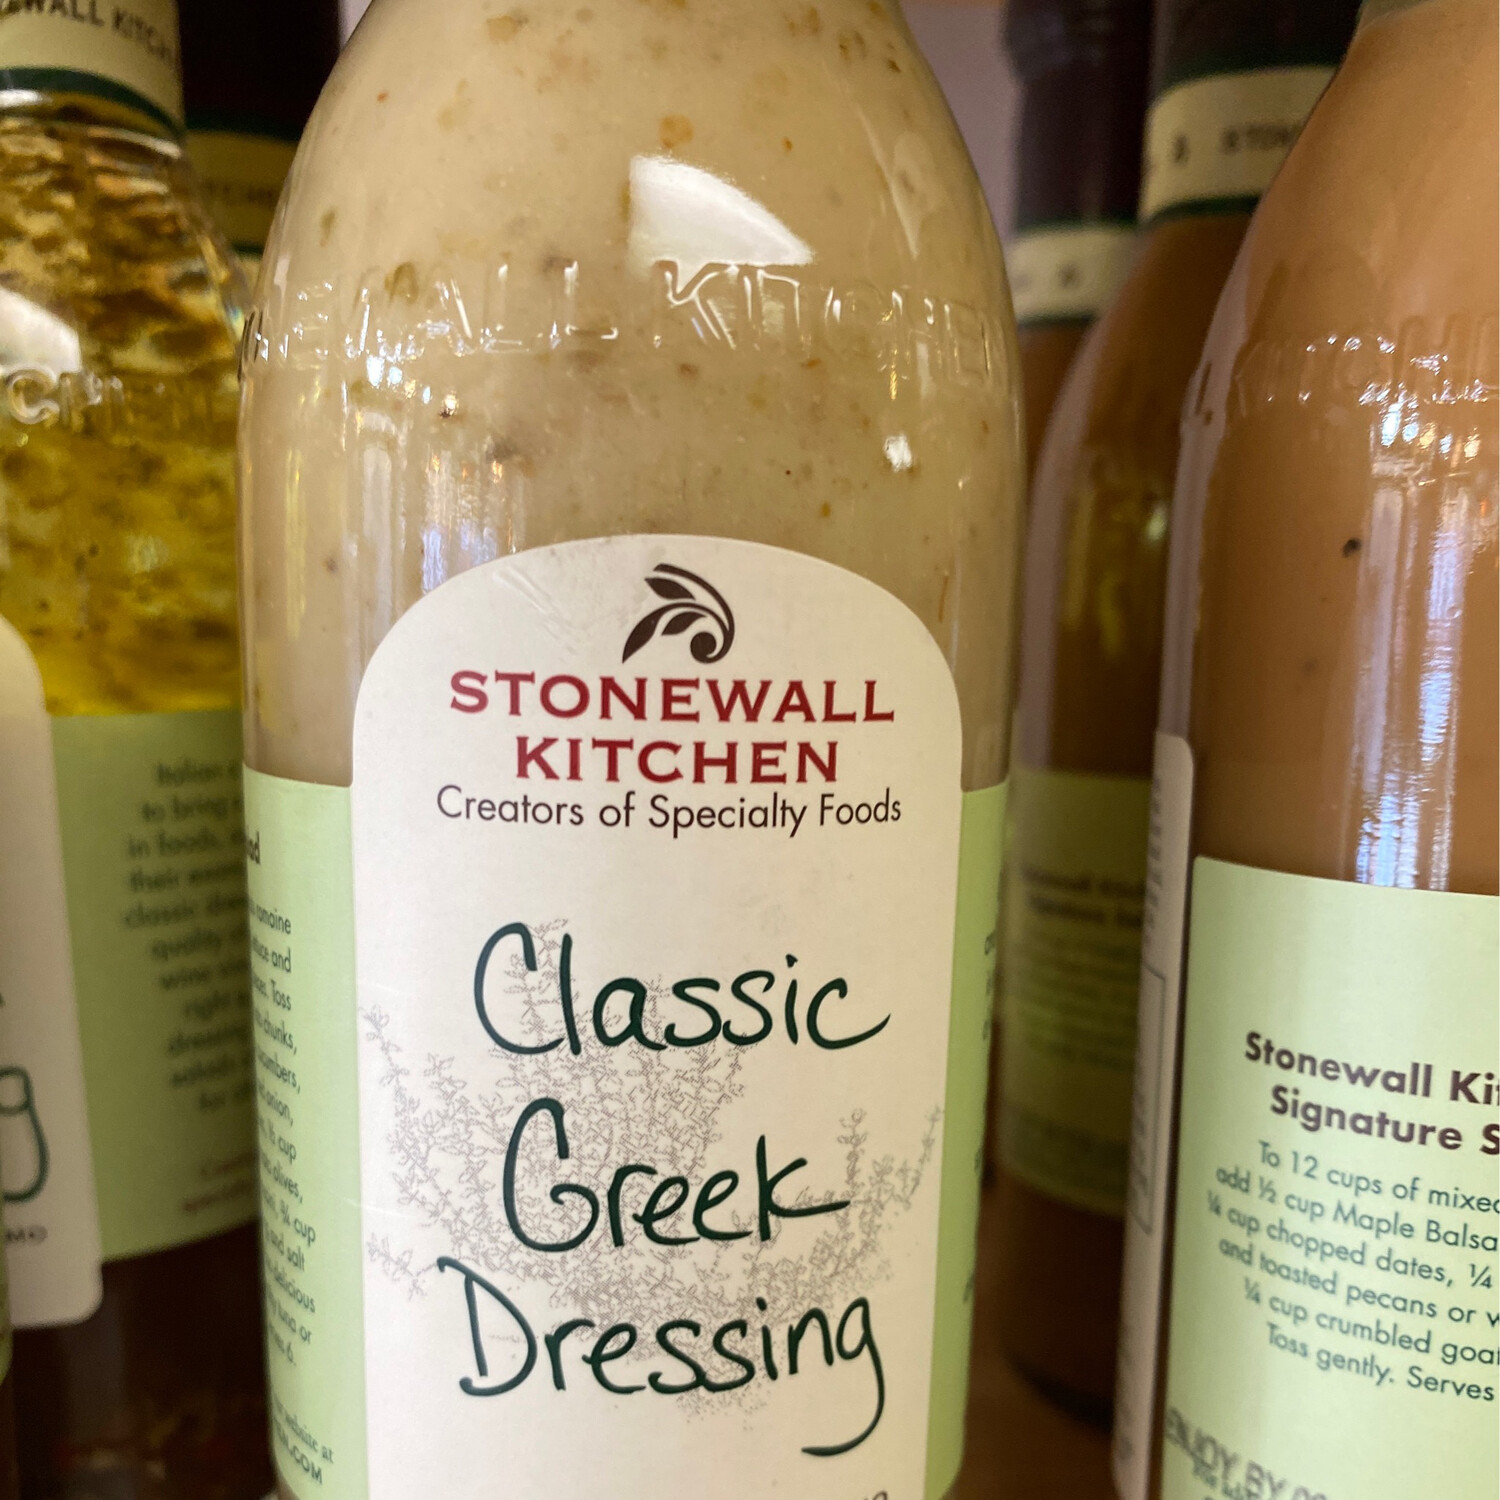 Stonewall Classic Greek Dressing